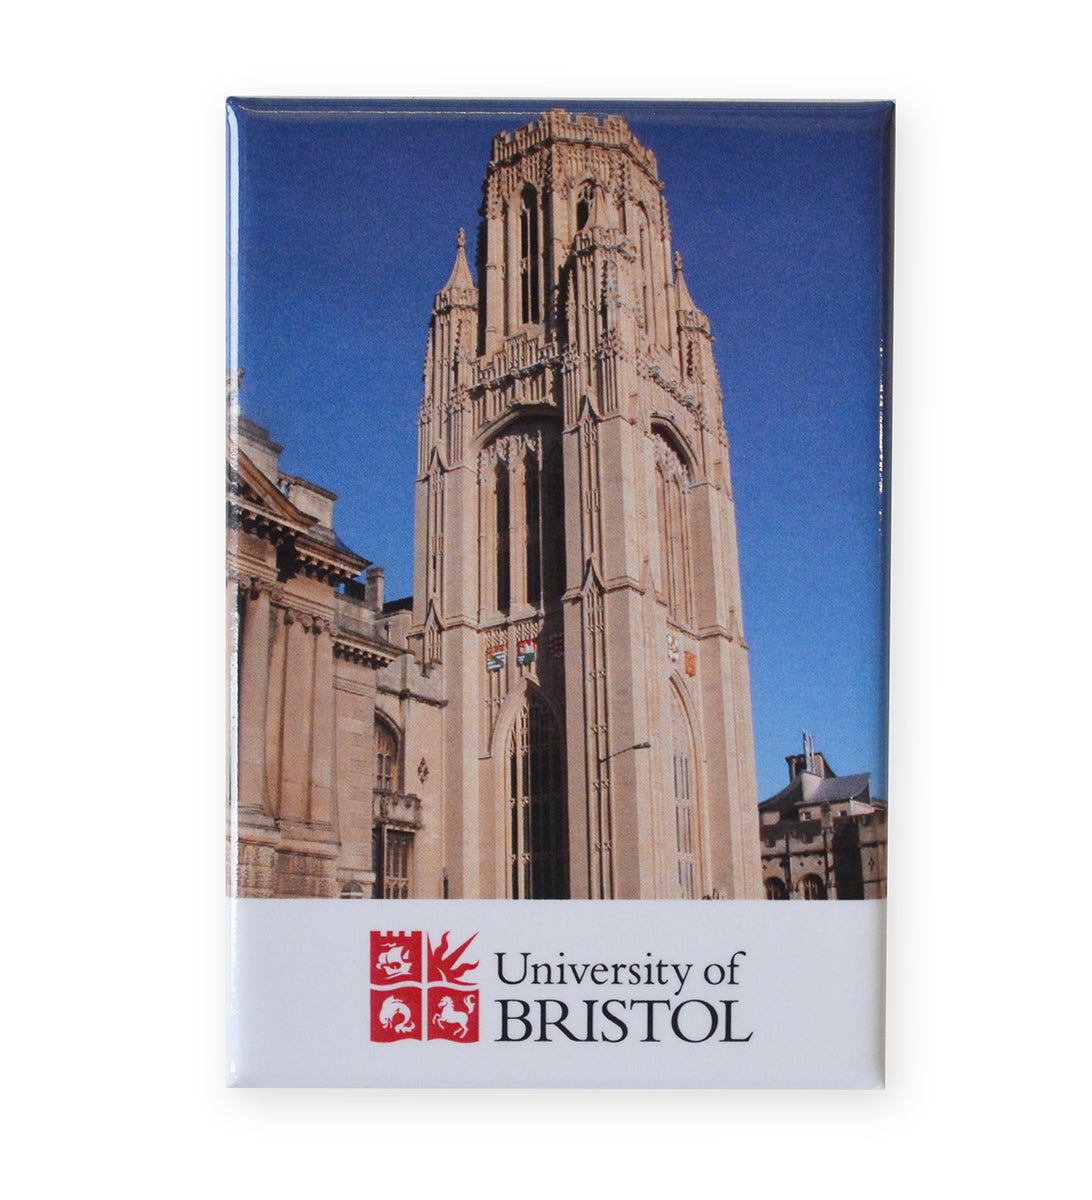 University Fridge Magnet